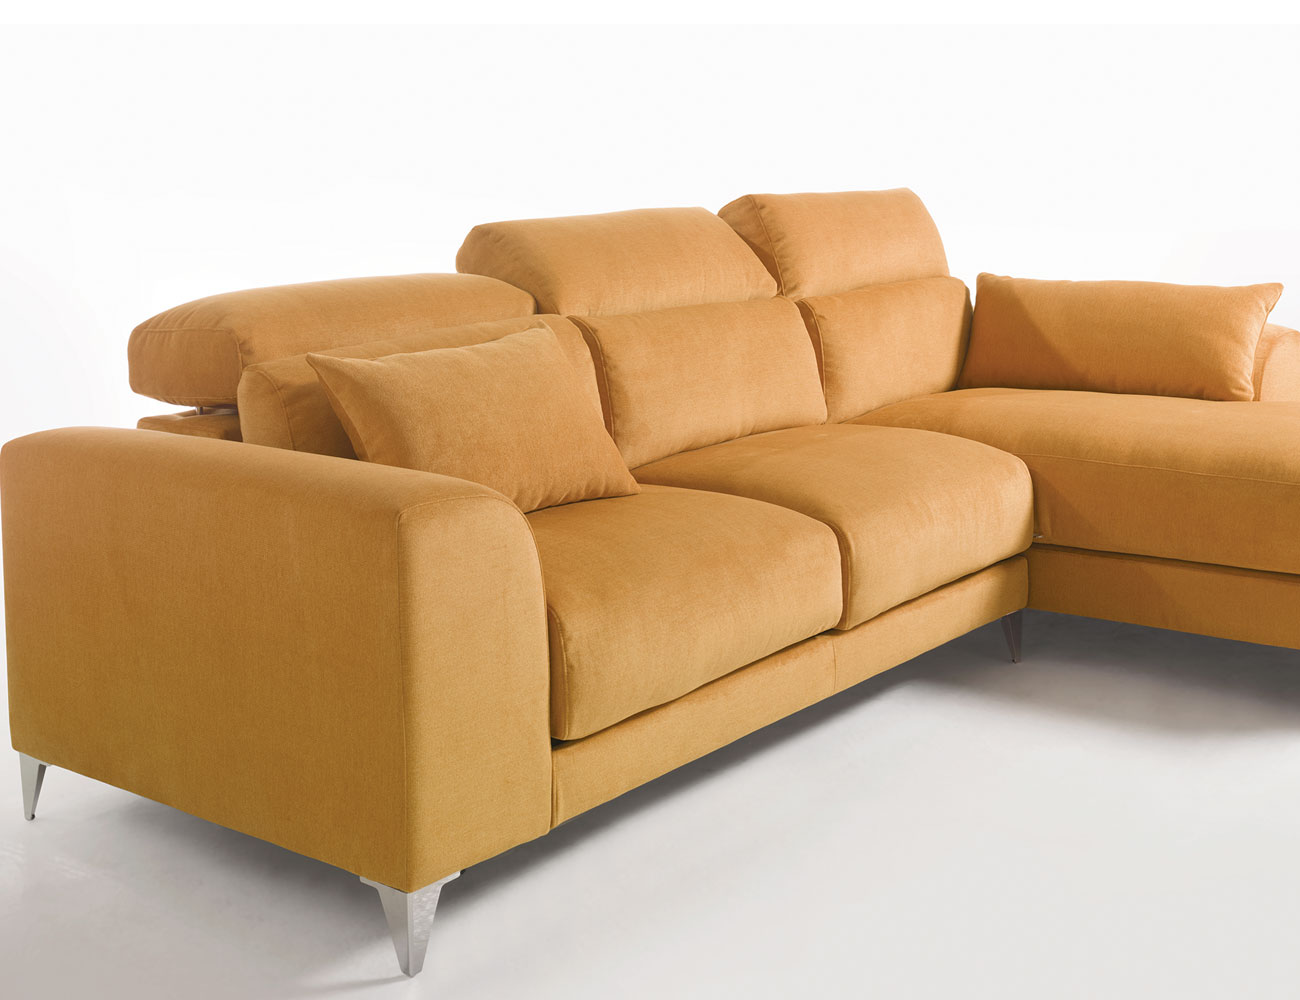 Sofa chaiselongue gran lujo decorativo patas altas amarillo 241